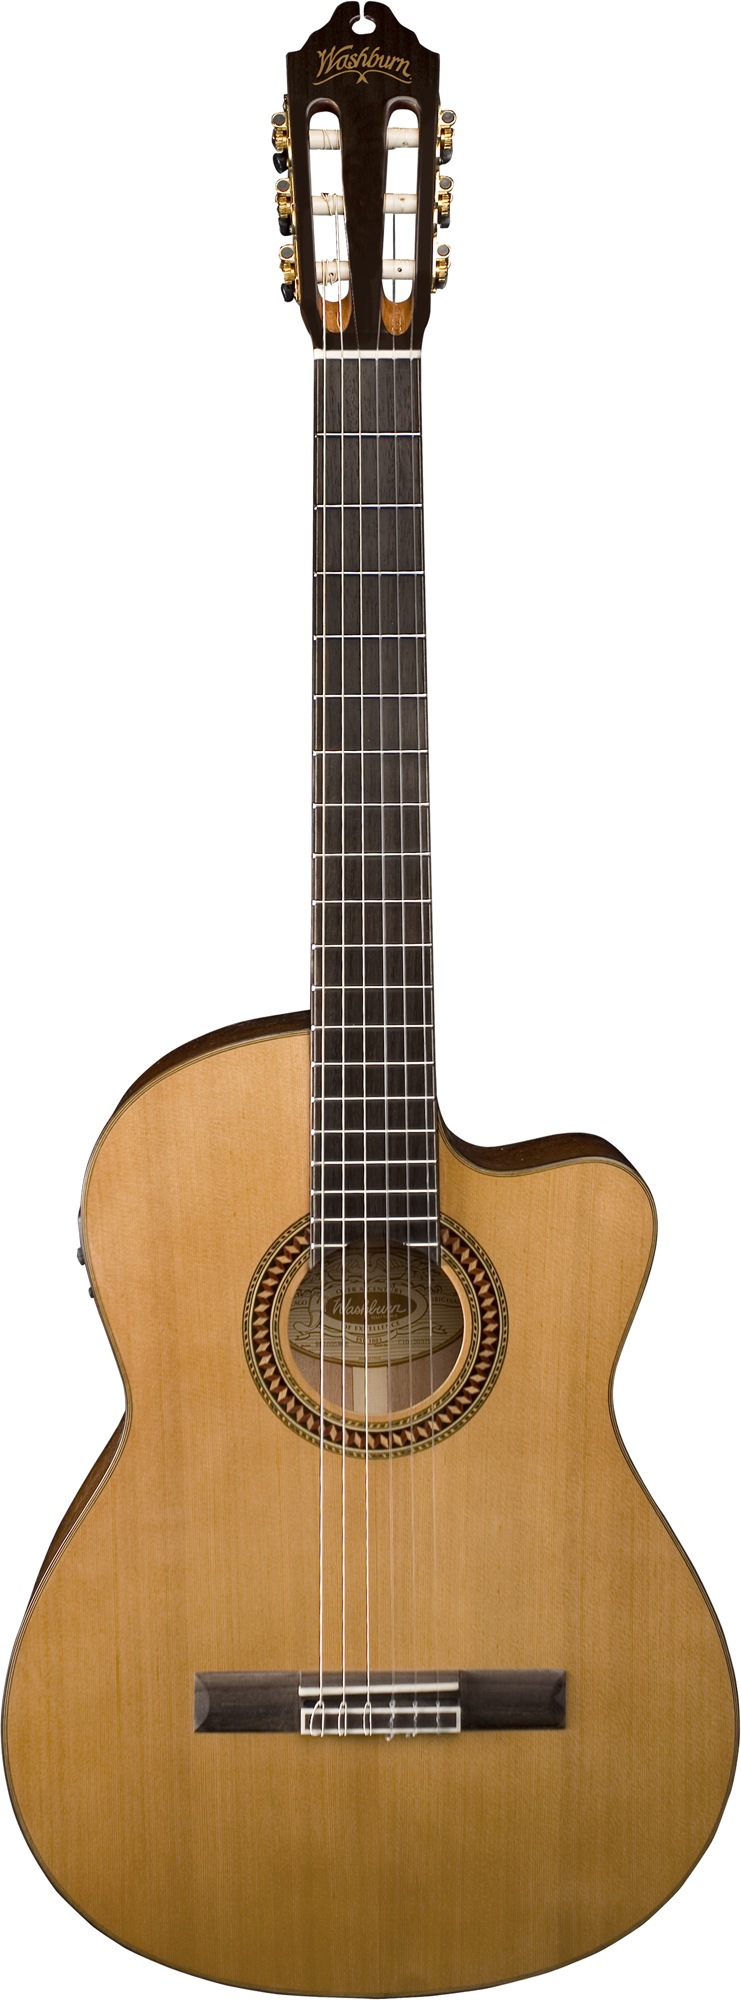 Washburn WC160SWCE Classical Cutaway Style Guitar with Tuner and Rosewood Bridge